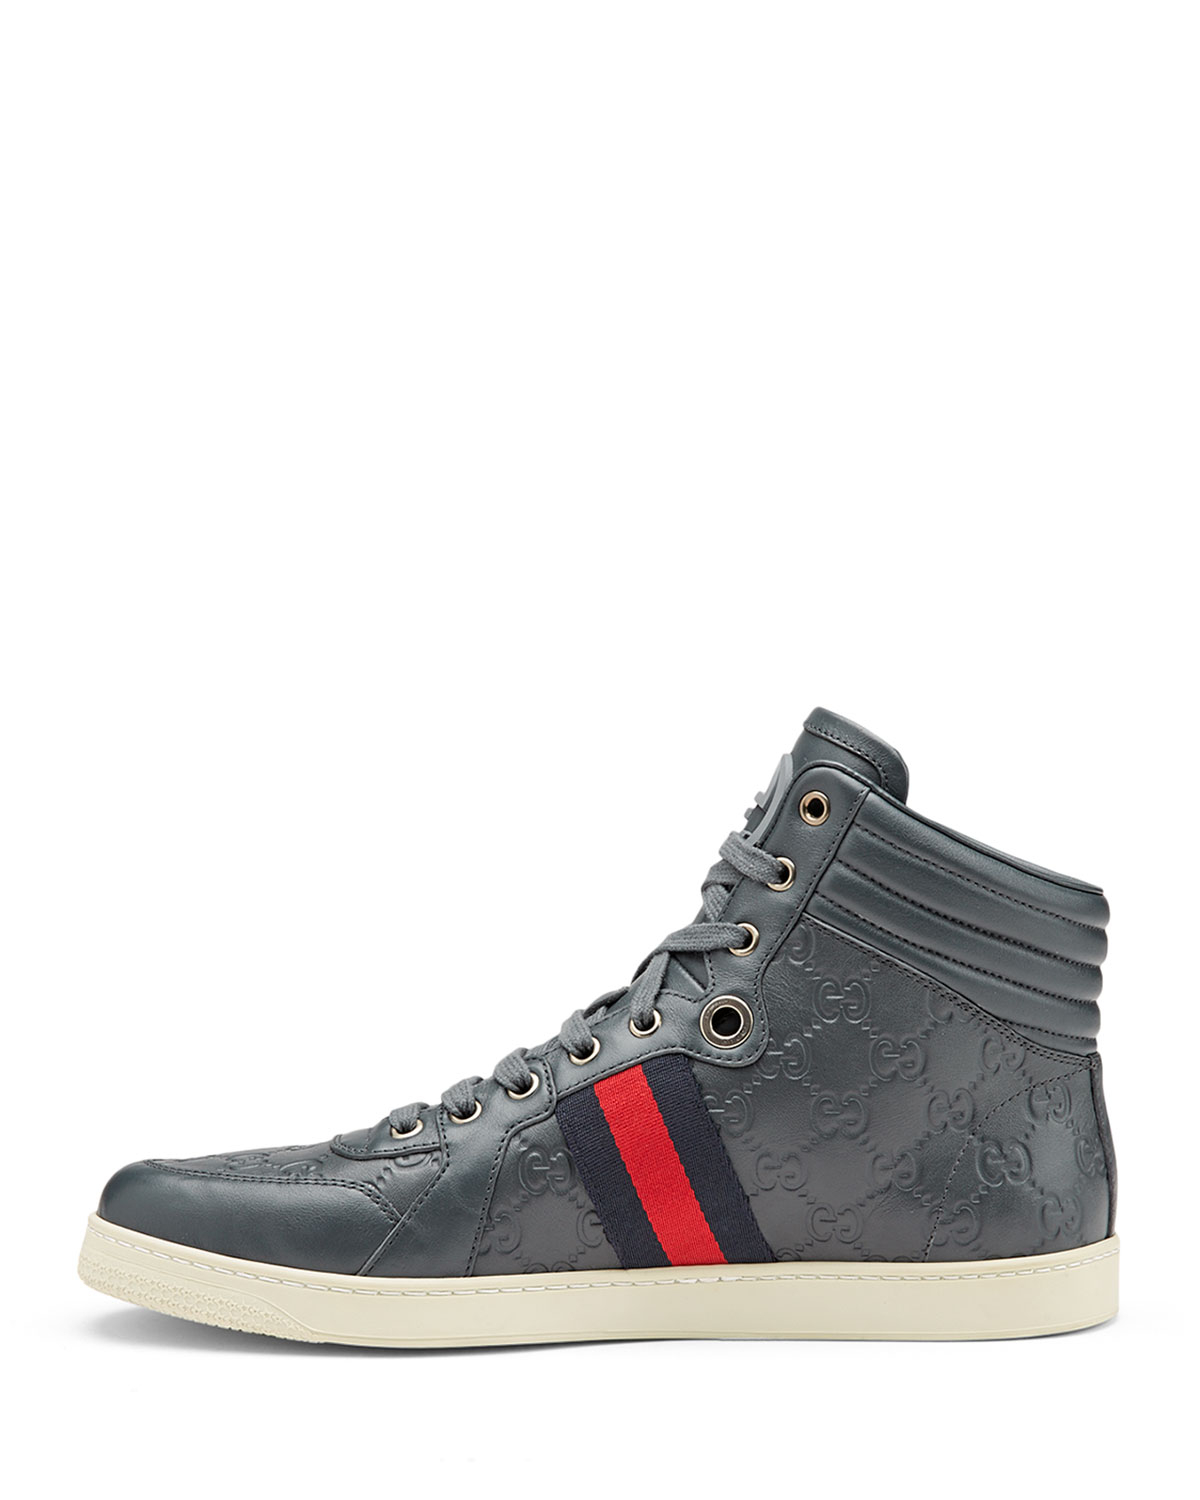 gucci coda ssima leather high top sneakers in gray for men. Black Bedroom Furniture Sets. Home Design Ideas